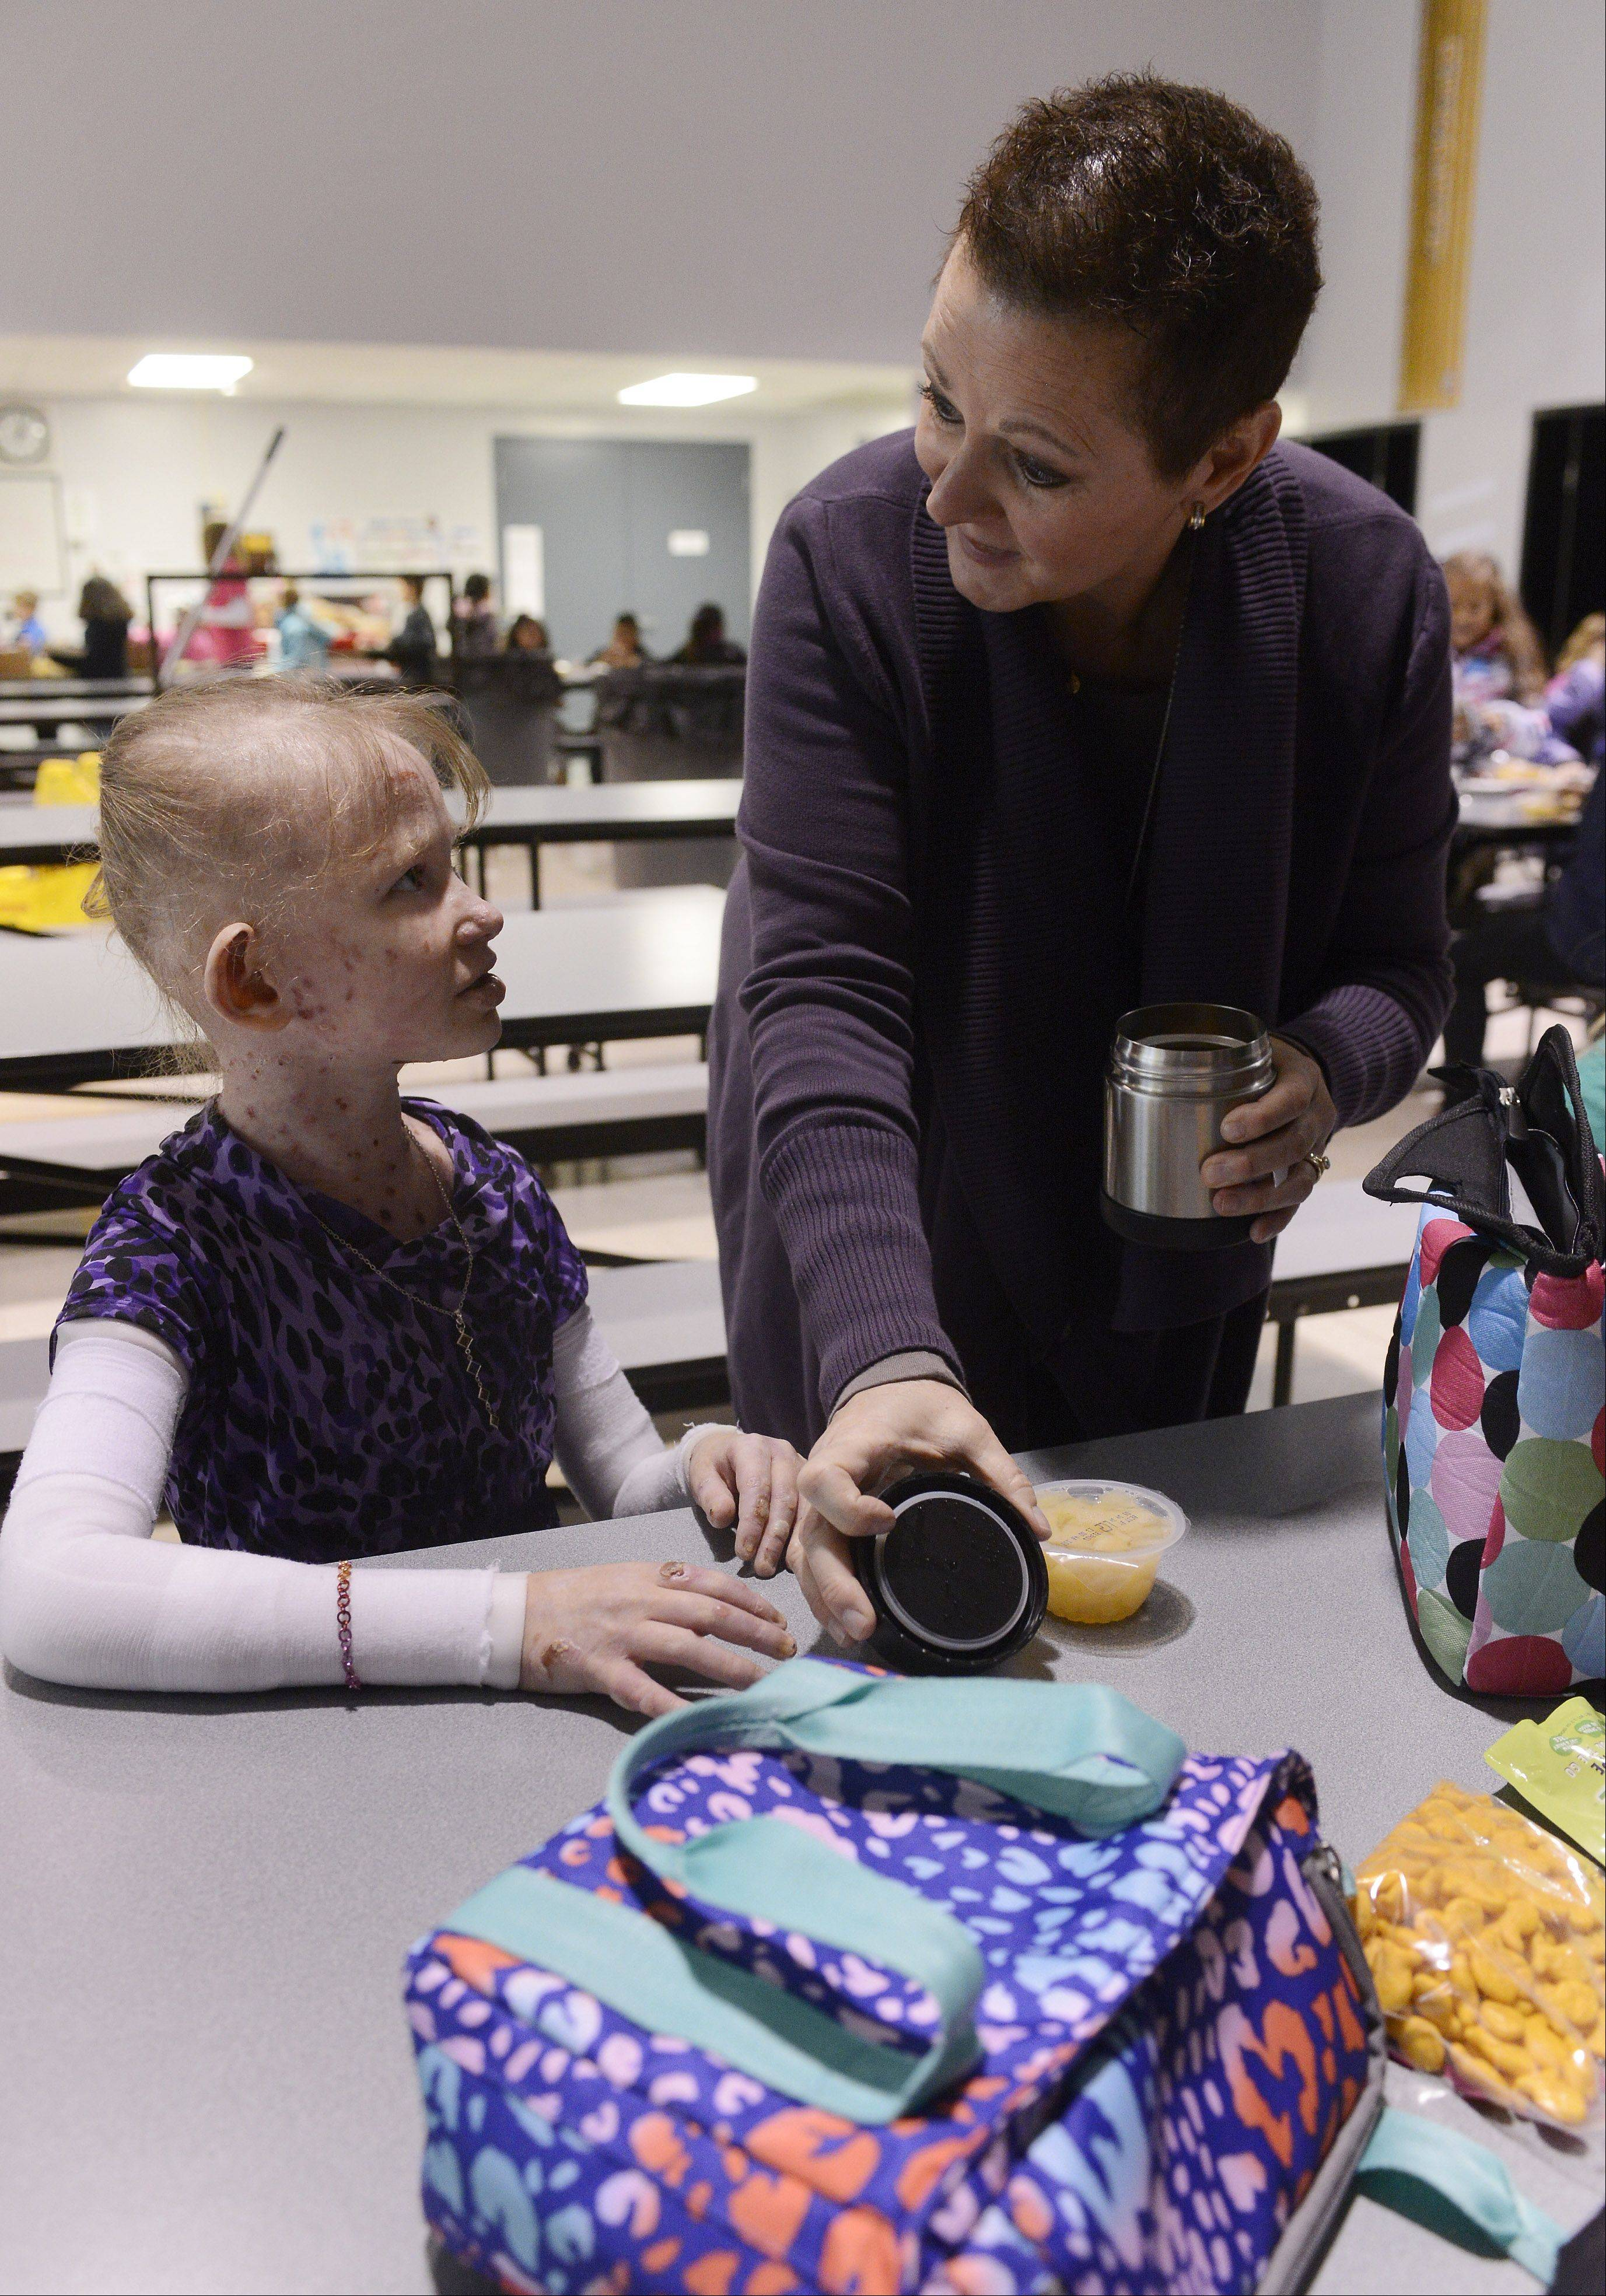 Caroline Provost gets ready for lunch with the help of one-on-one program assistant Michelle Whiteside at Kimball Hill School in Rolling Meadows.